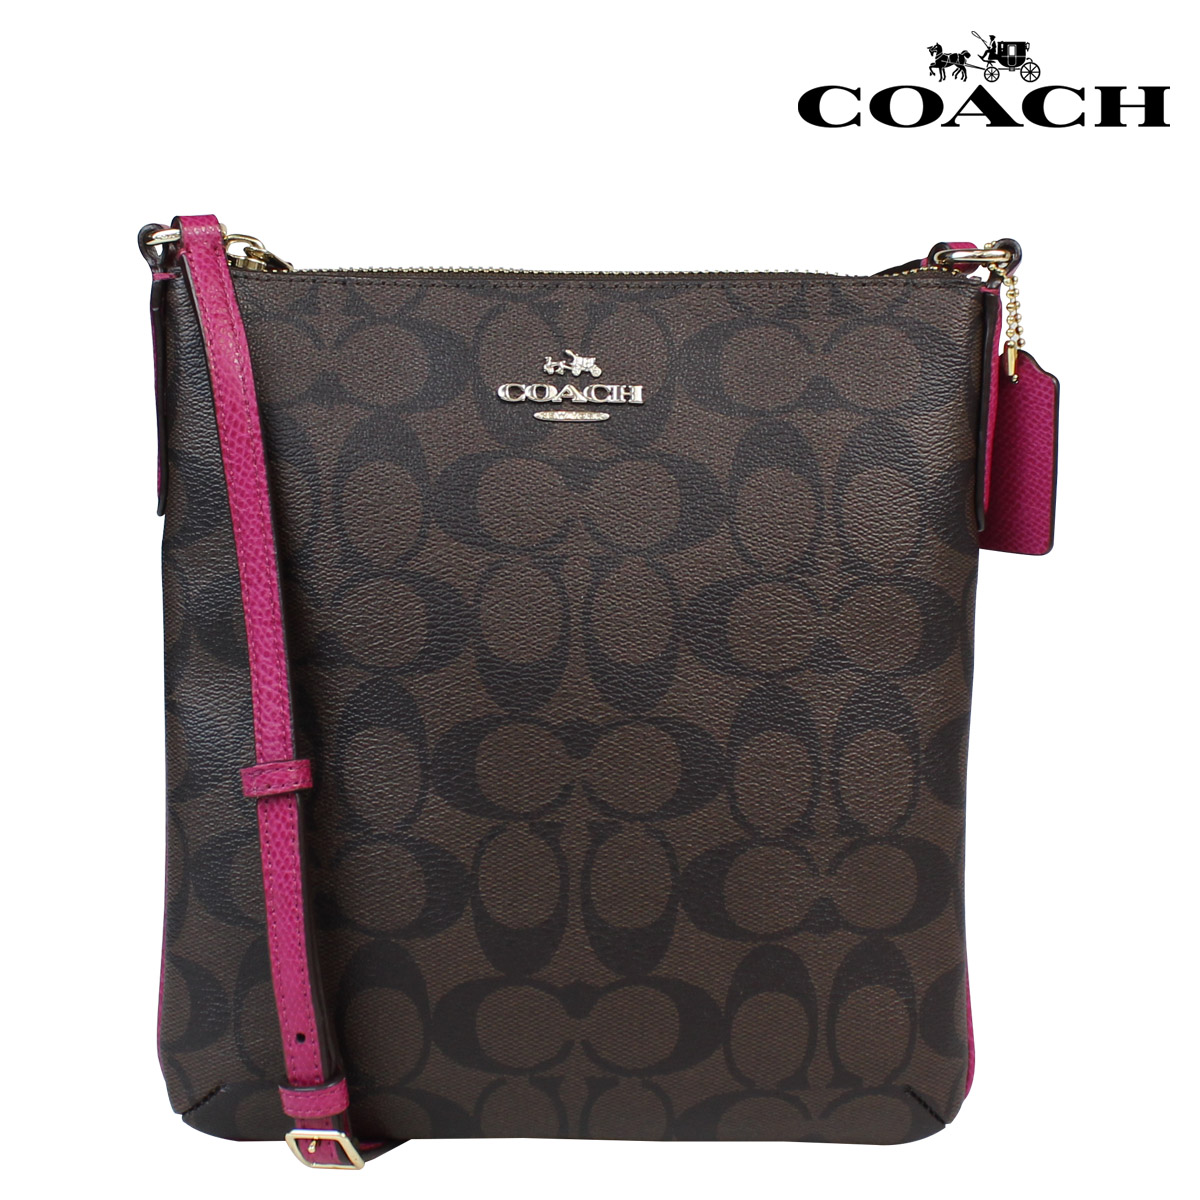 3c12244740 Coach COACH women s shoulder bag F35940 Brown x Cranberry signature NS  cross body  12   1 new in stock